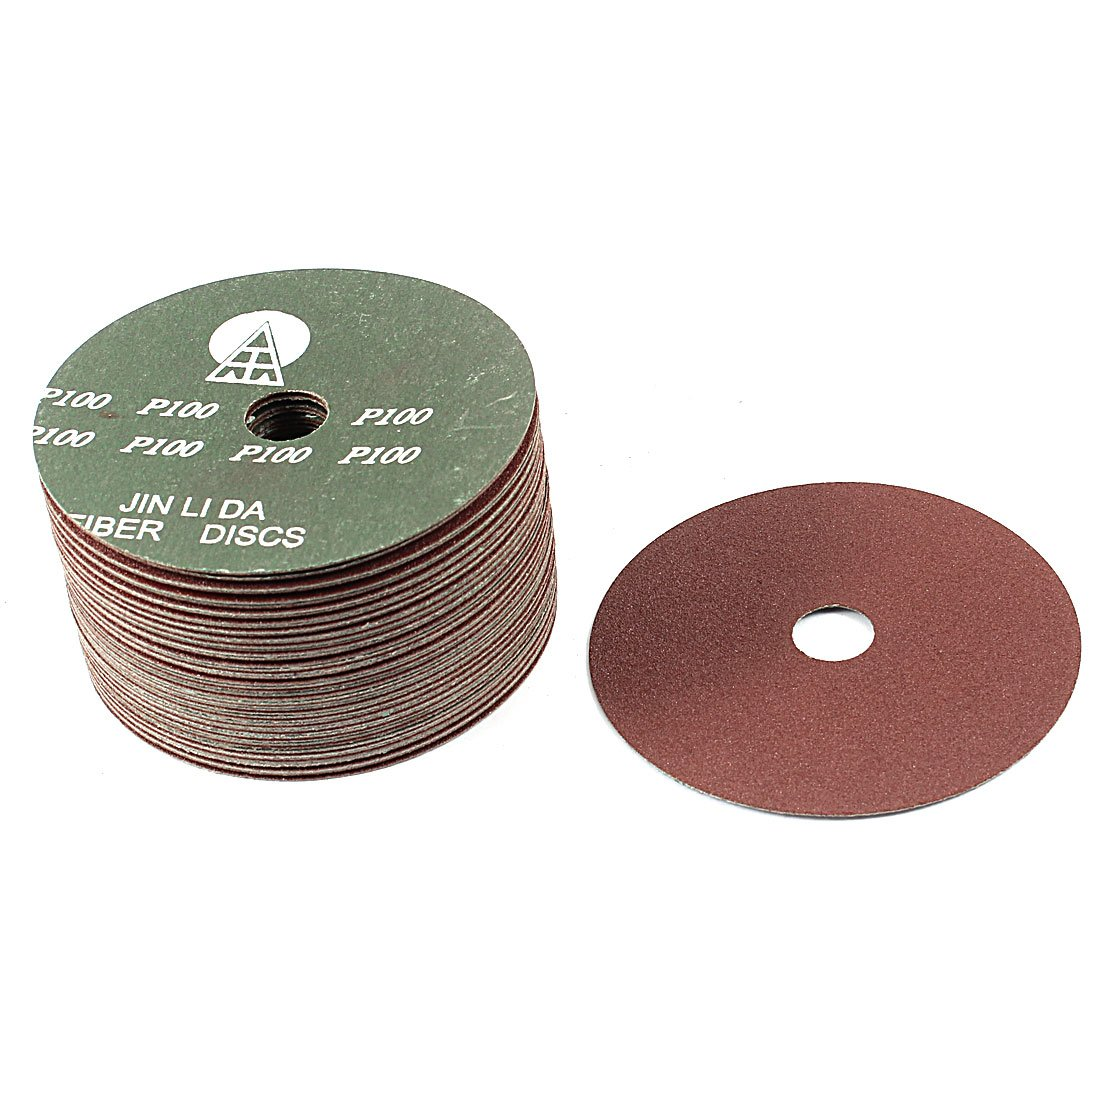 P100 Slice Grinding Disc Cutting Wheel 100mm x 16mm x 0.9mm 50pcs Sourcingmap a14061000ux0716